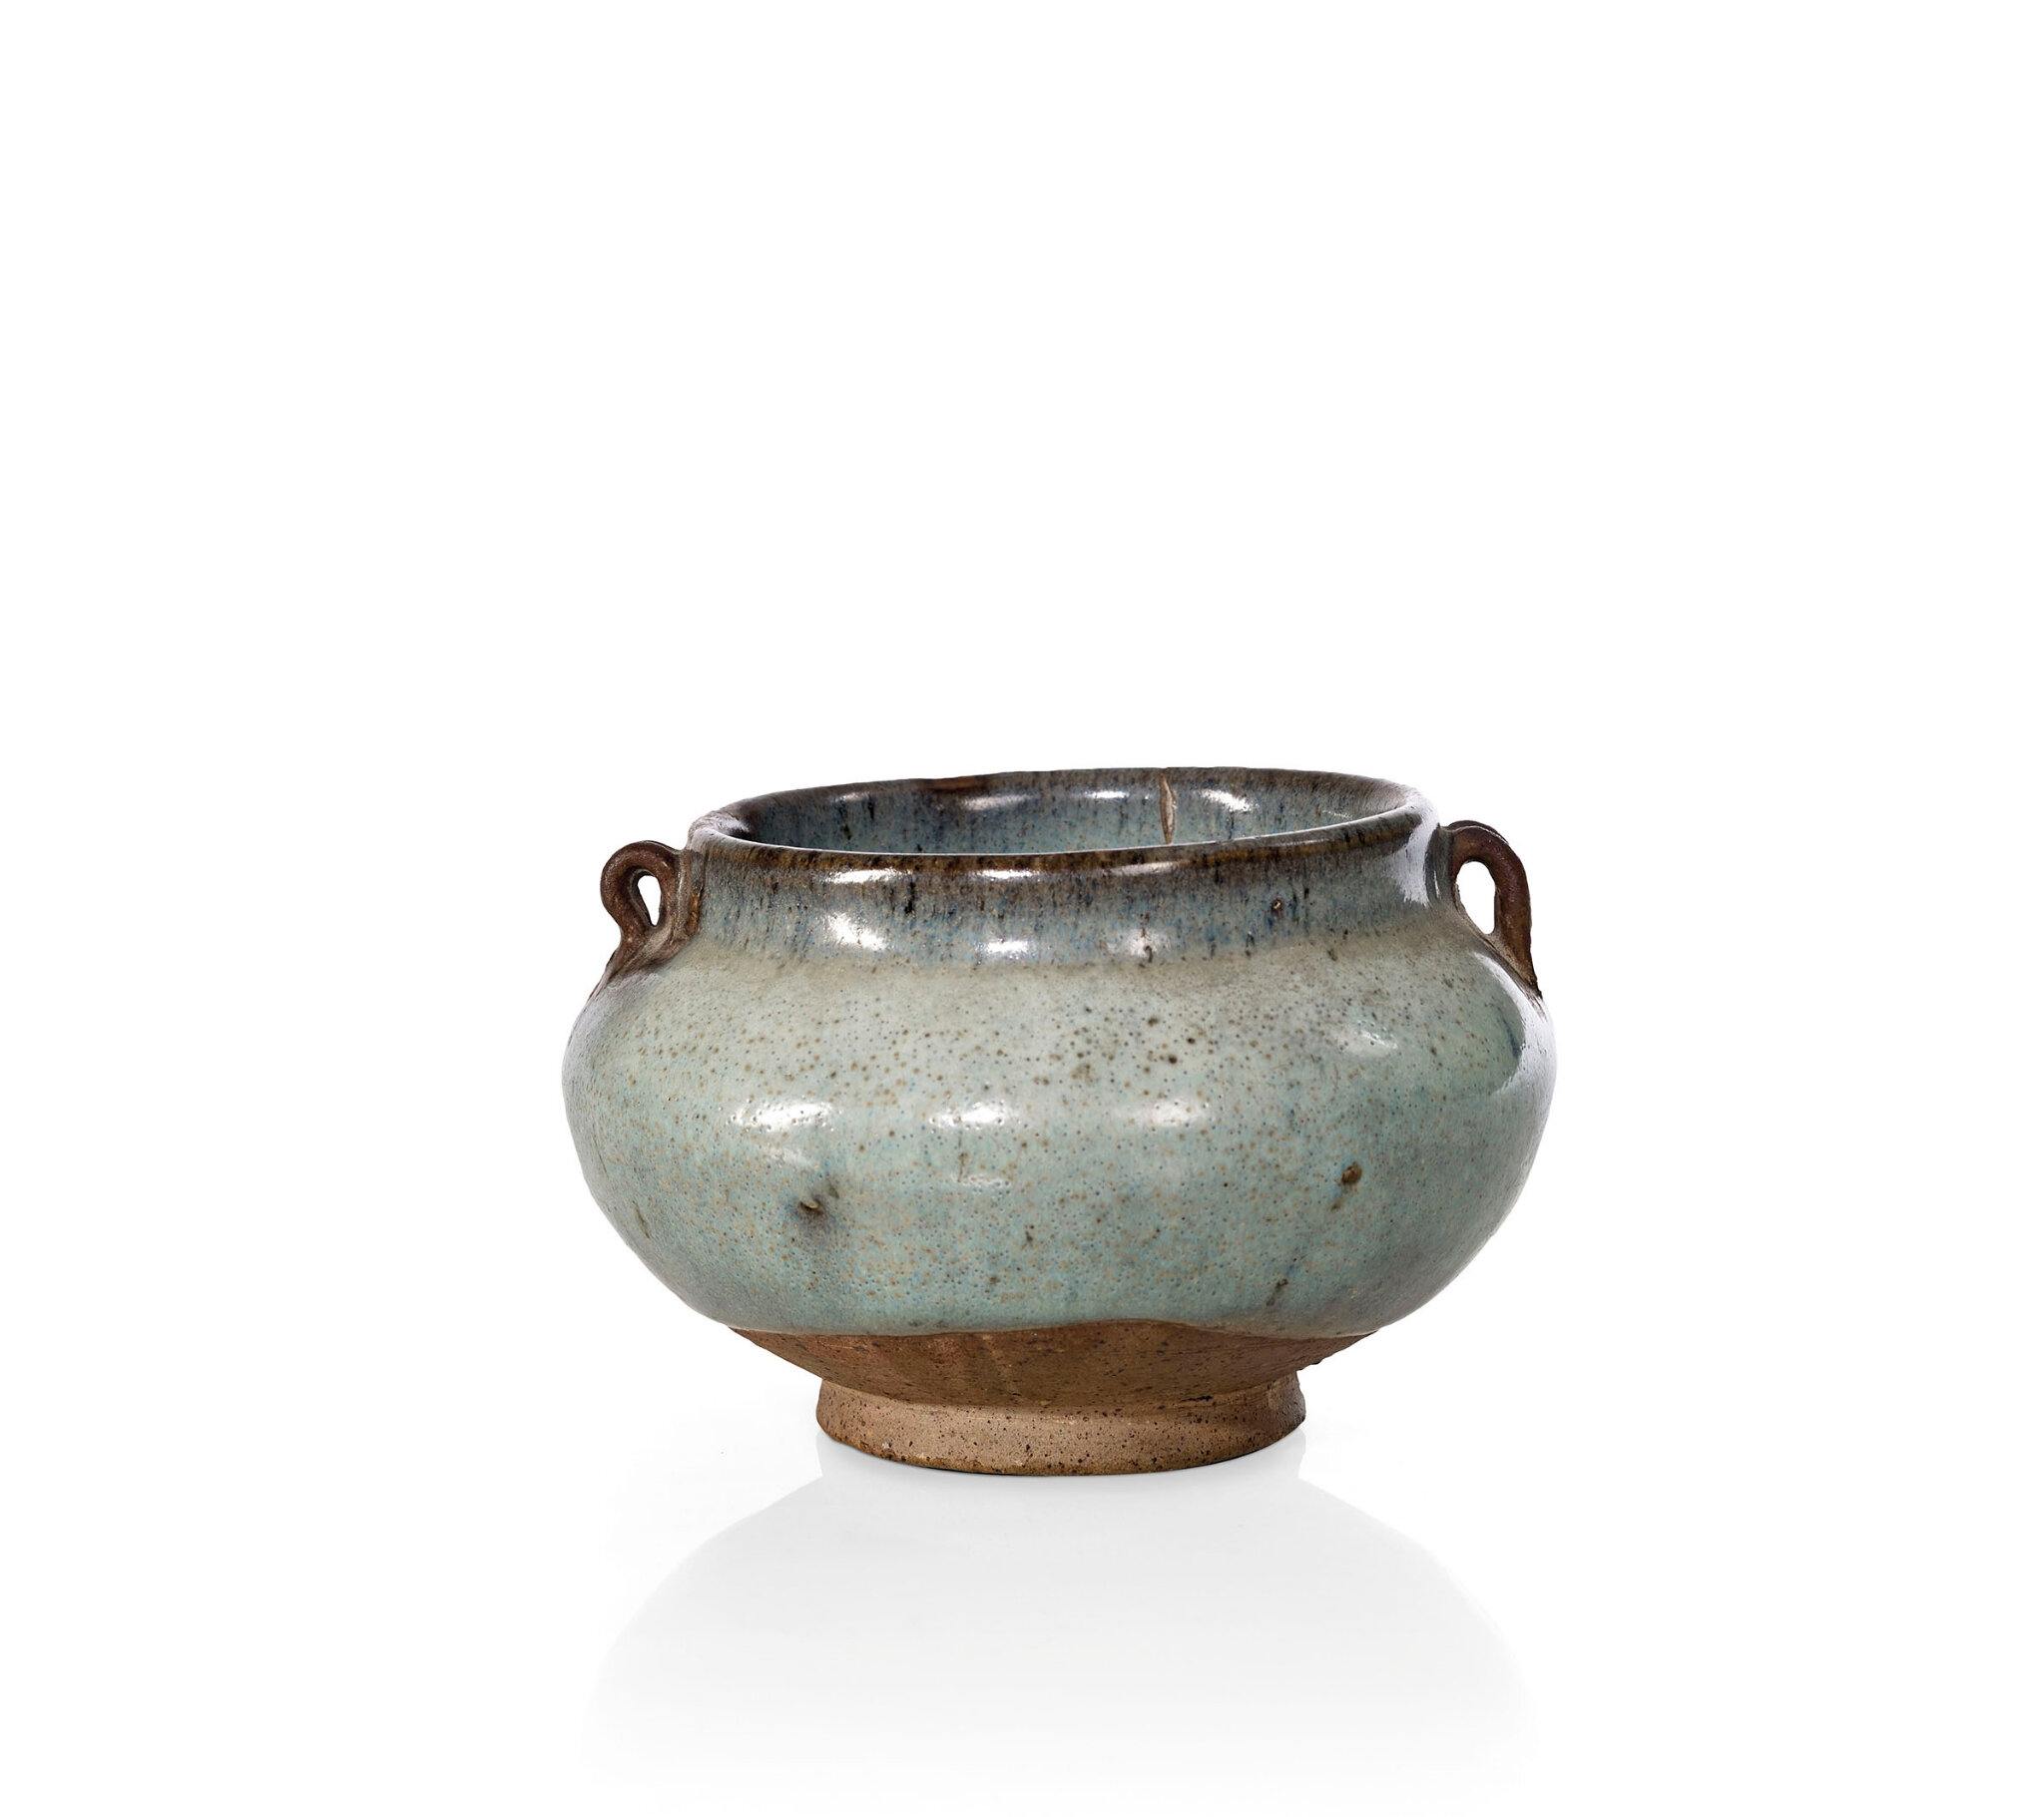 A small junyao globular jar, Jin-Yuan dynasty, 12th-14th century